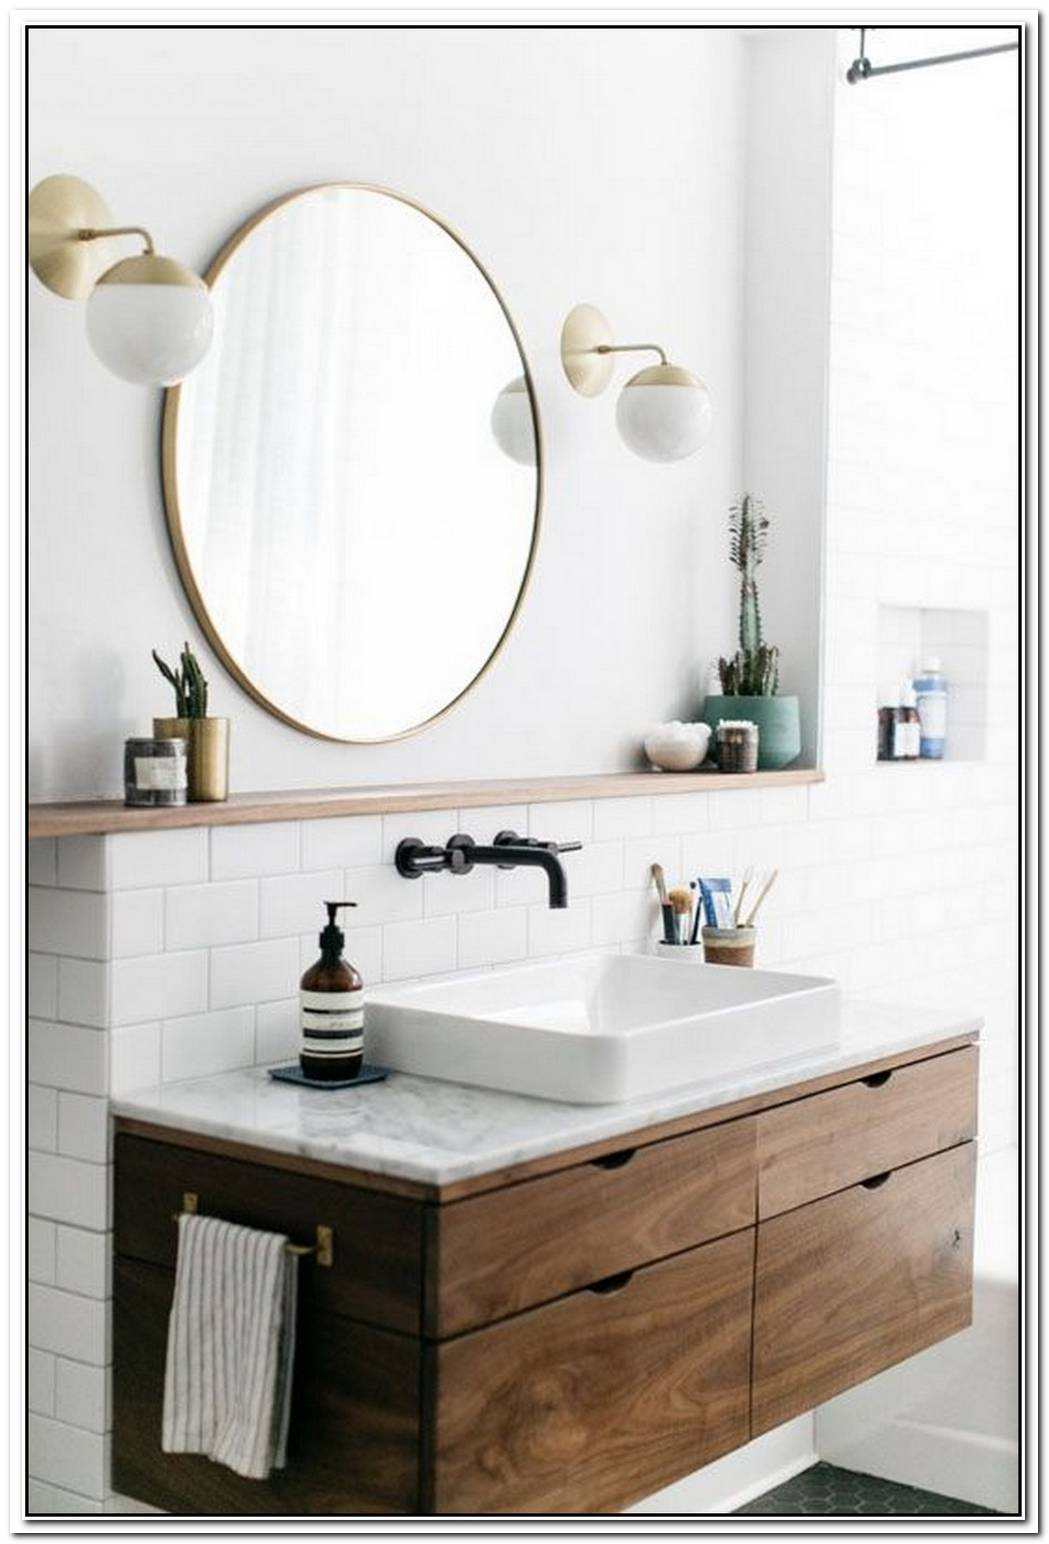 Bathroom Modern Wood Chic